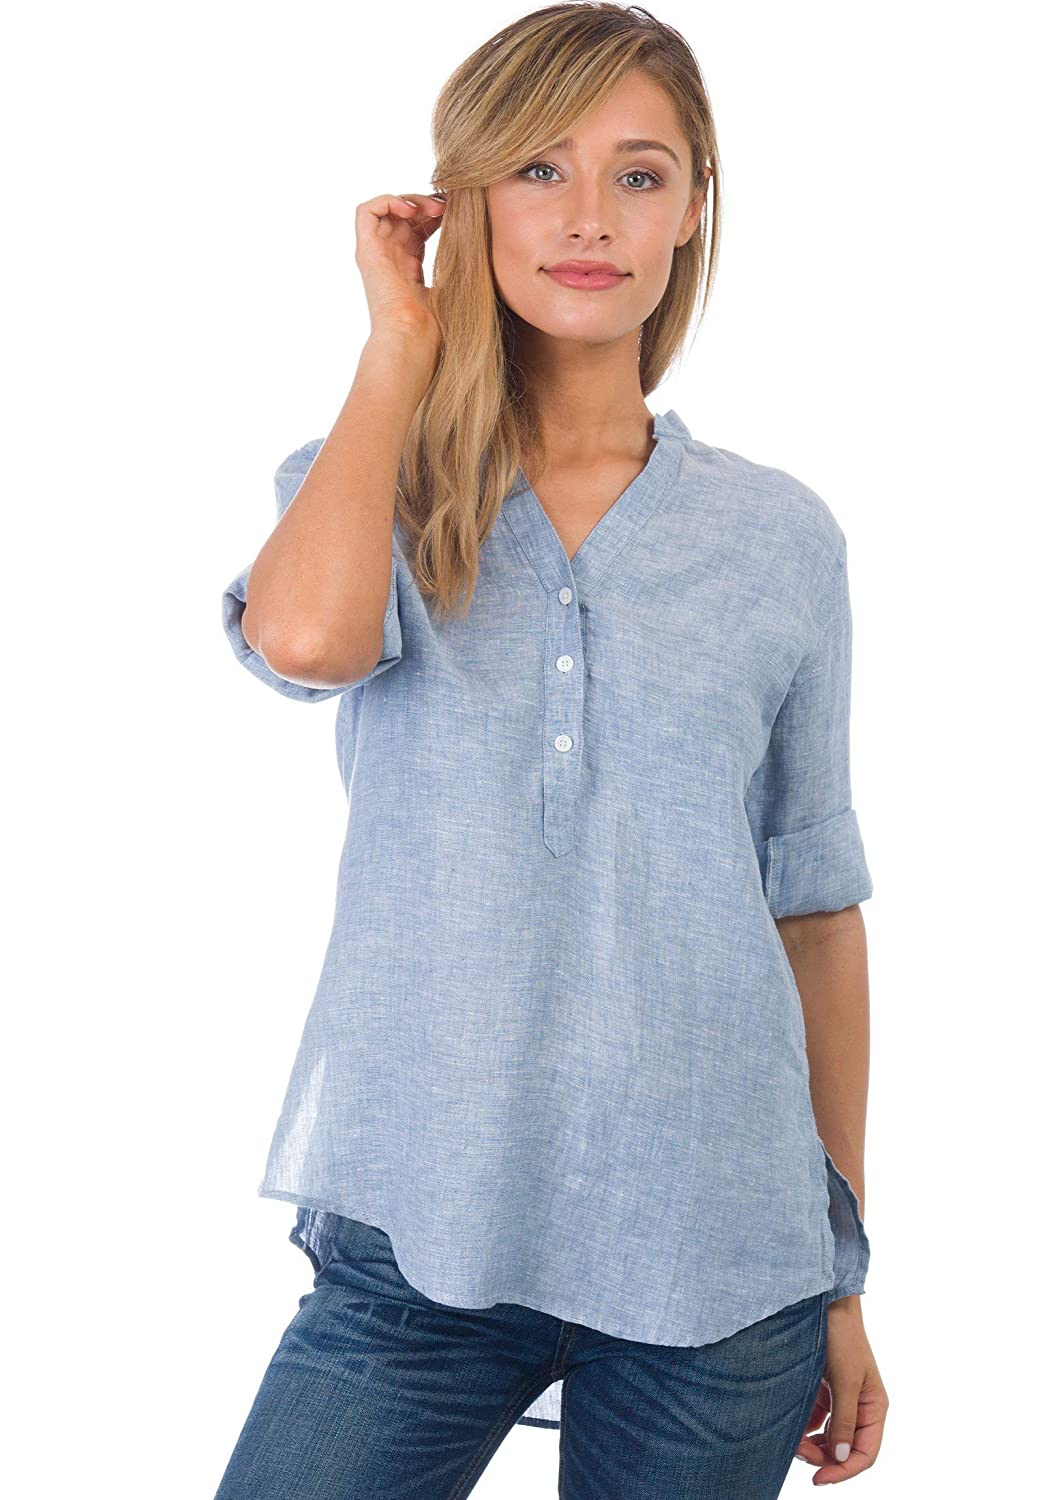 897d53828ca CAMIXA Women s 100% Linen Casual Button-up Popover Shirt Effortless Airy  Basic at Amazon Women s Clothing store